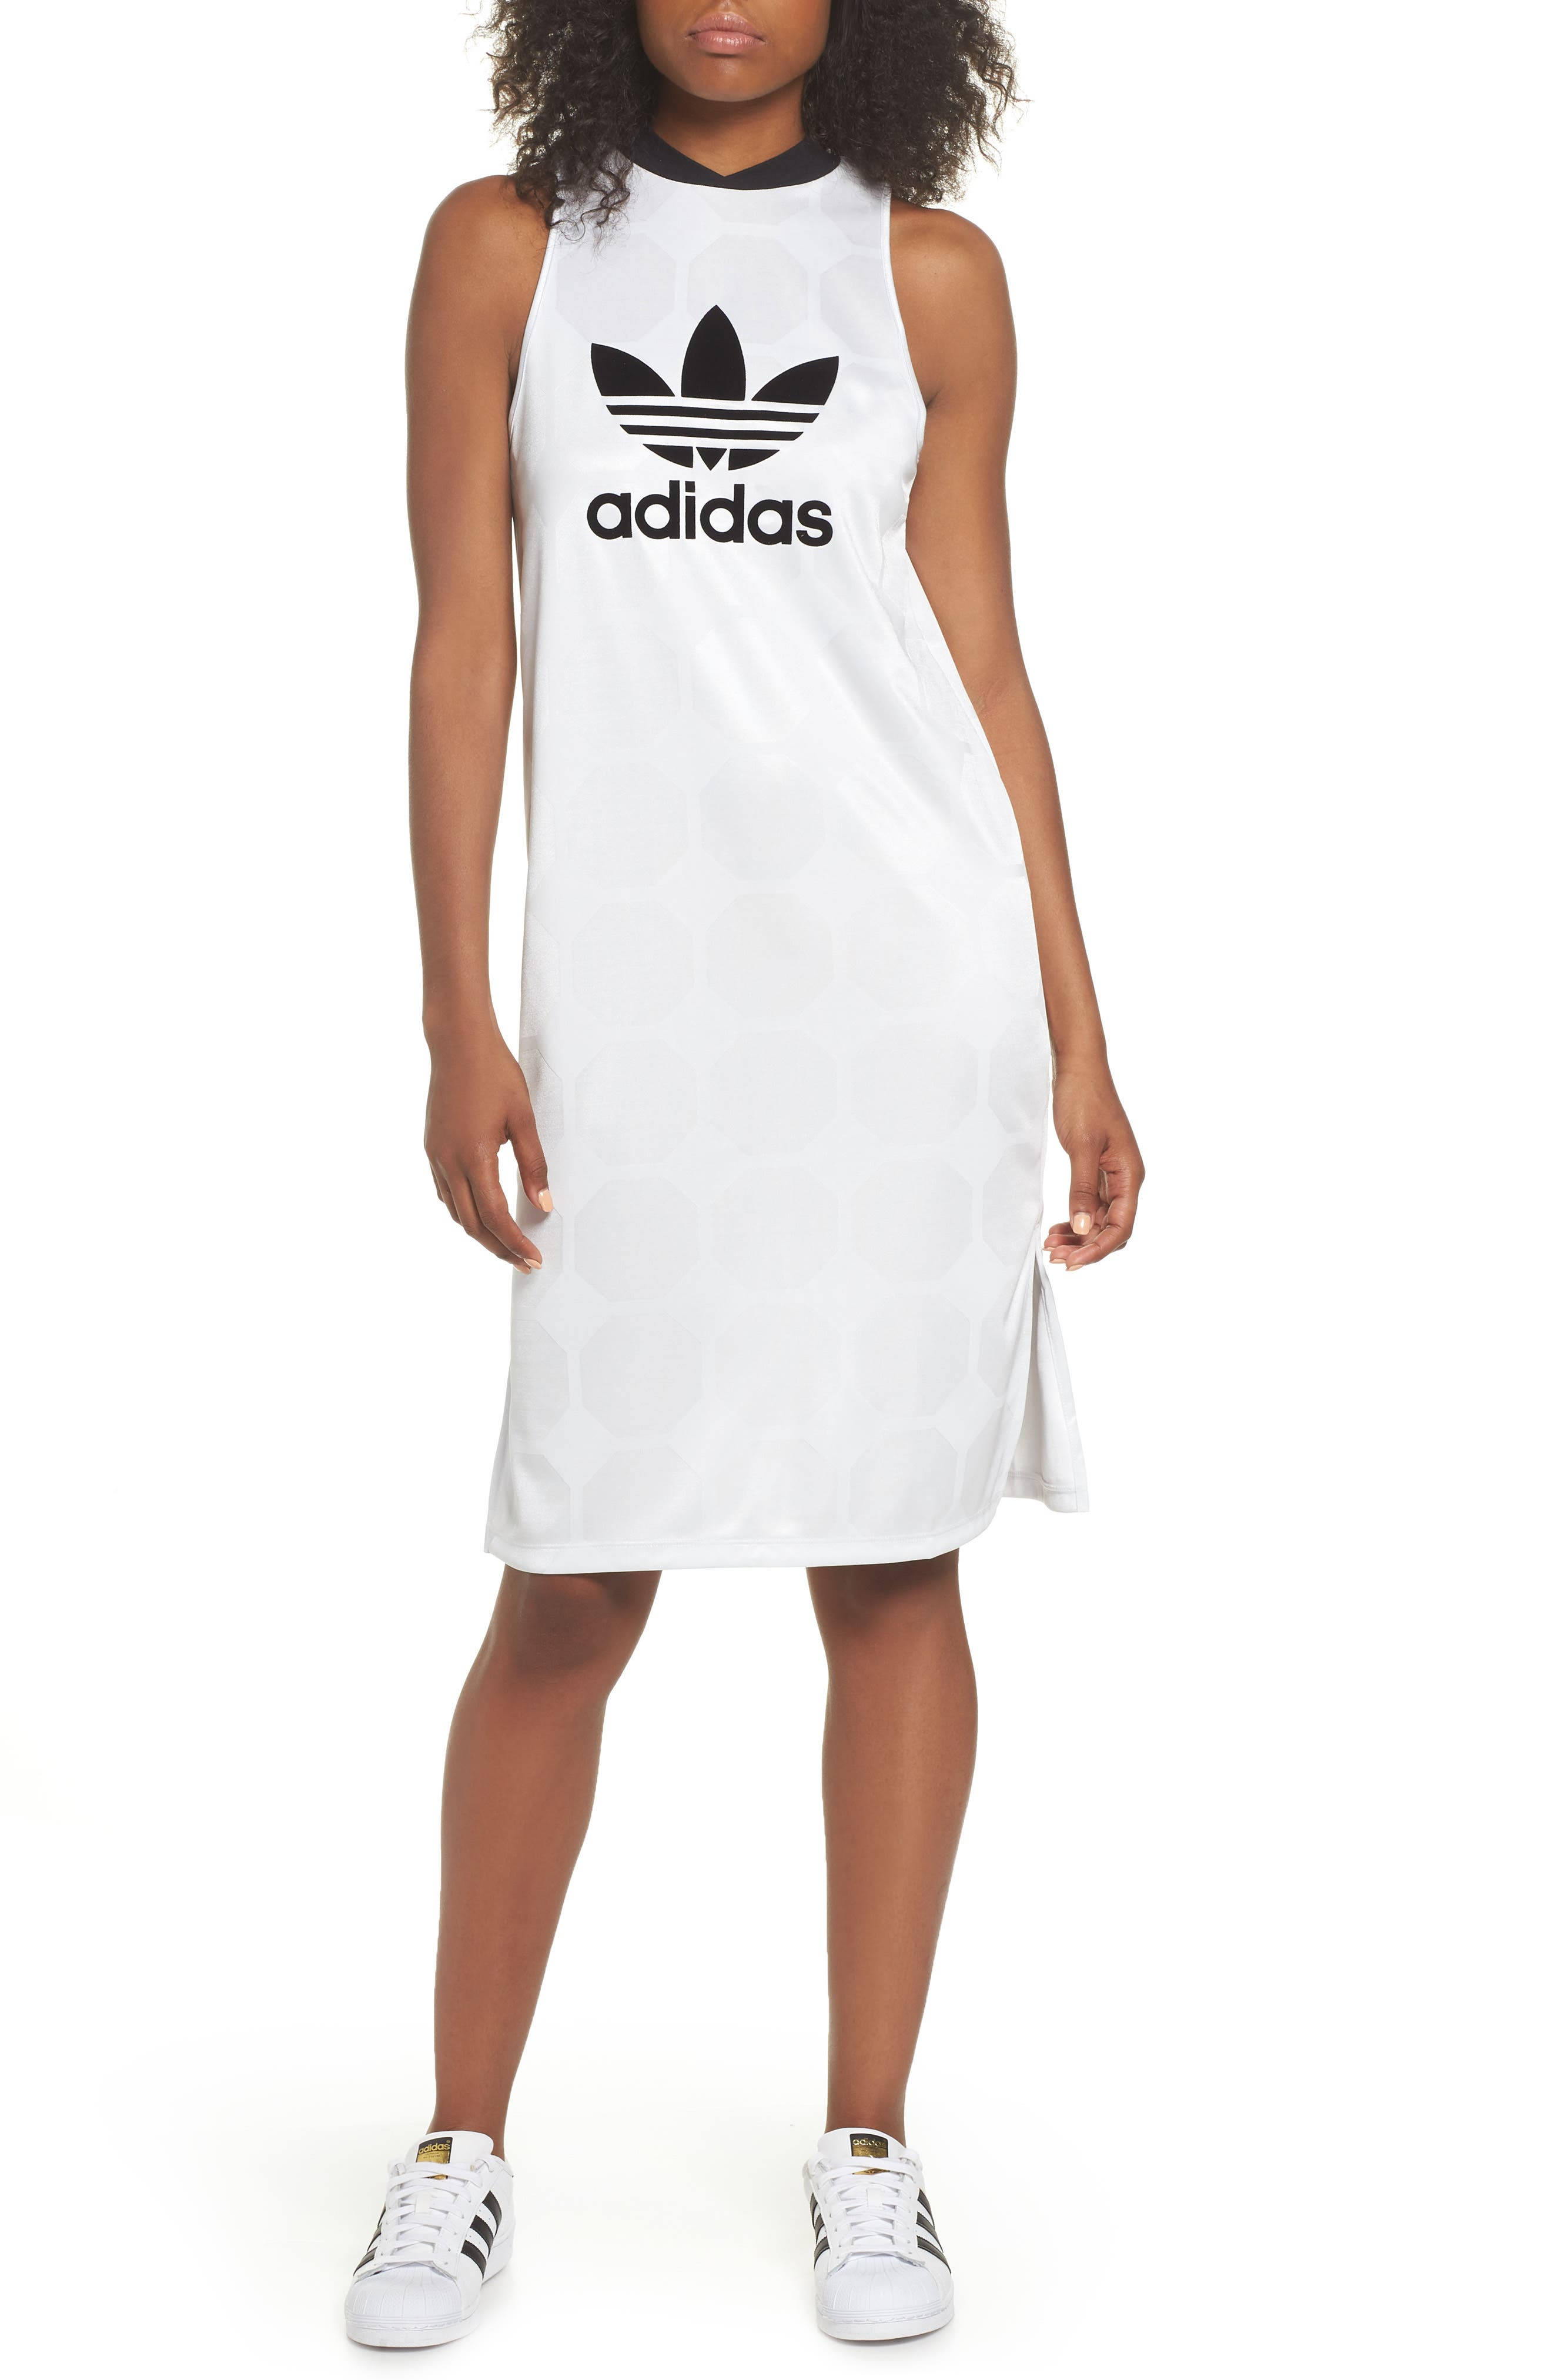 adidas Fashion League Trefoil Jacquard Tank Dress